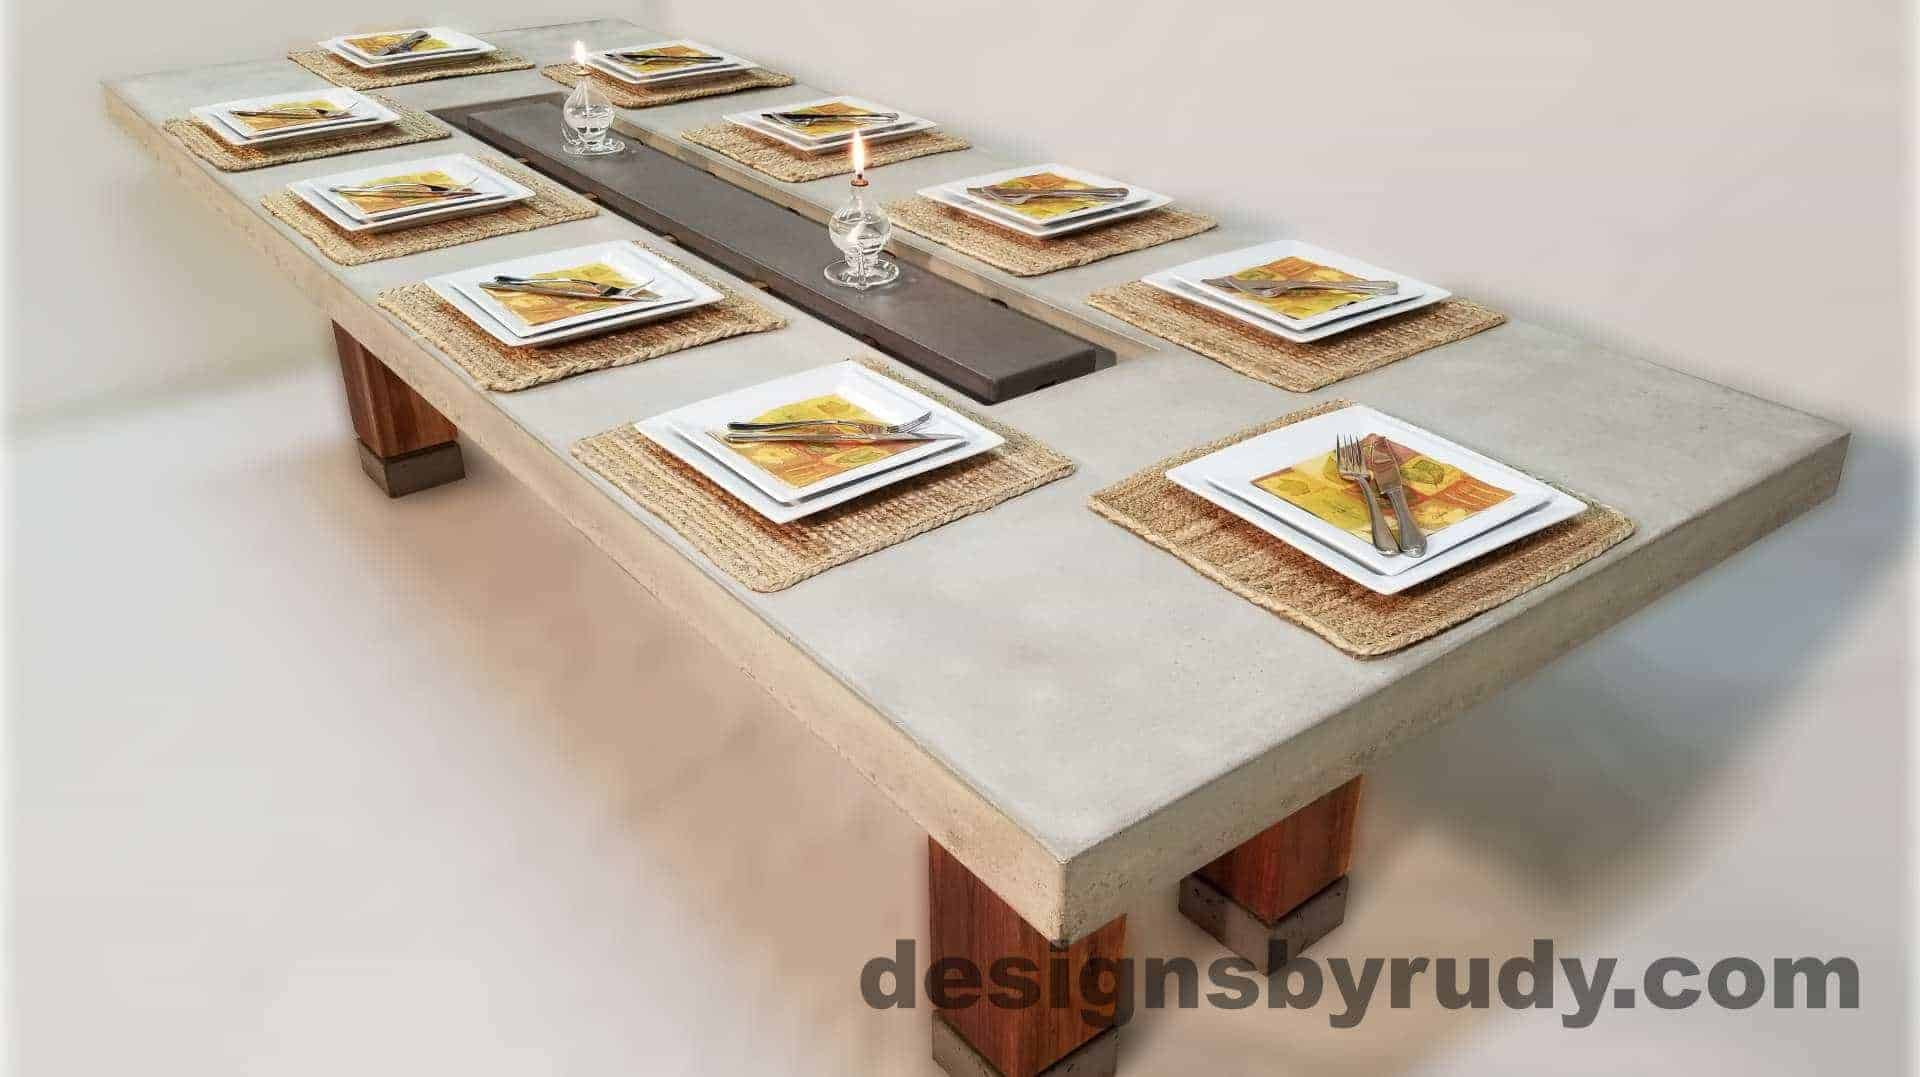 Dr Dt1 Concrete Top Dining Table With Center Cutout And Teak Legs